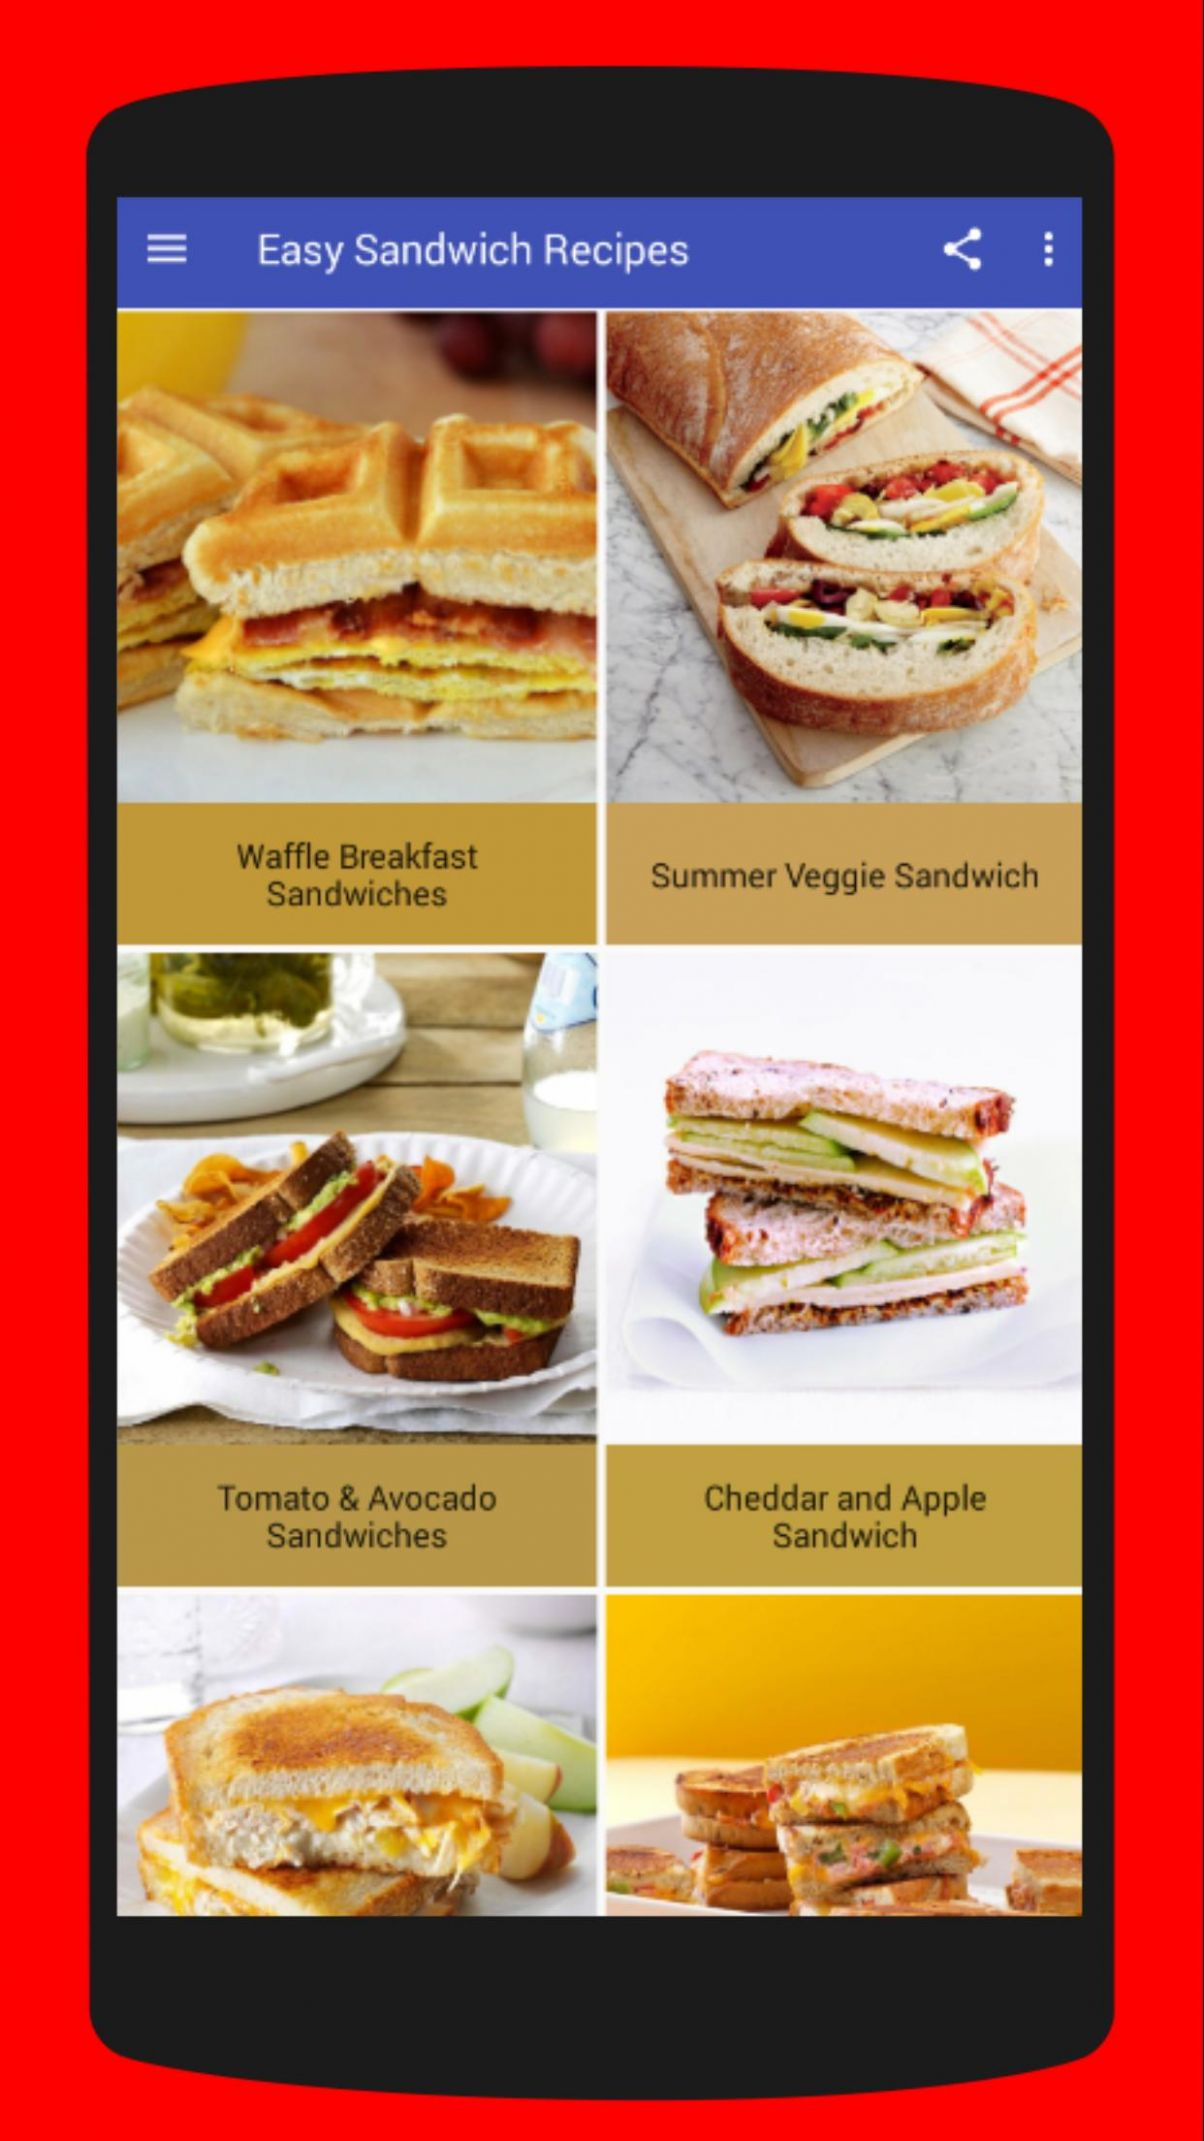 Easy Sandwich Recipes for Android - APK Download - Sandwich Recipes Download